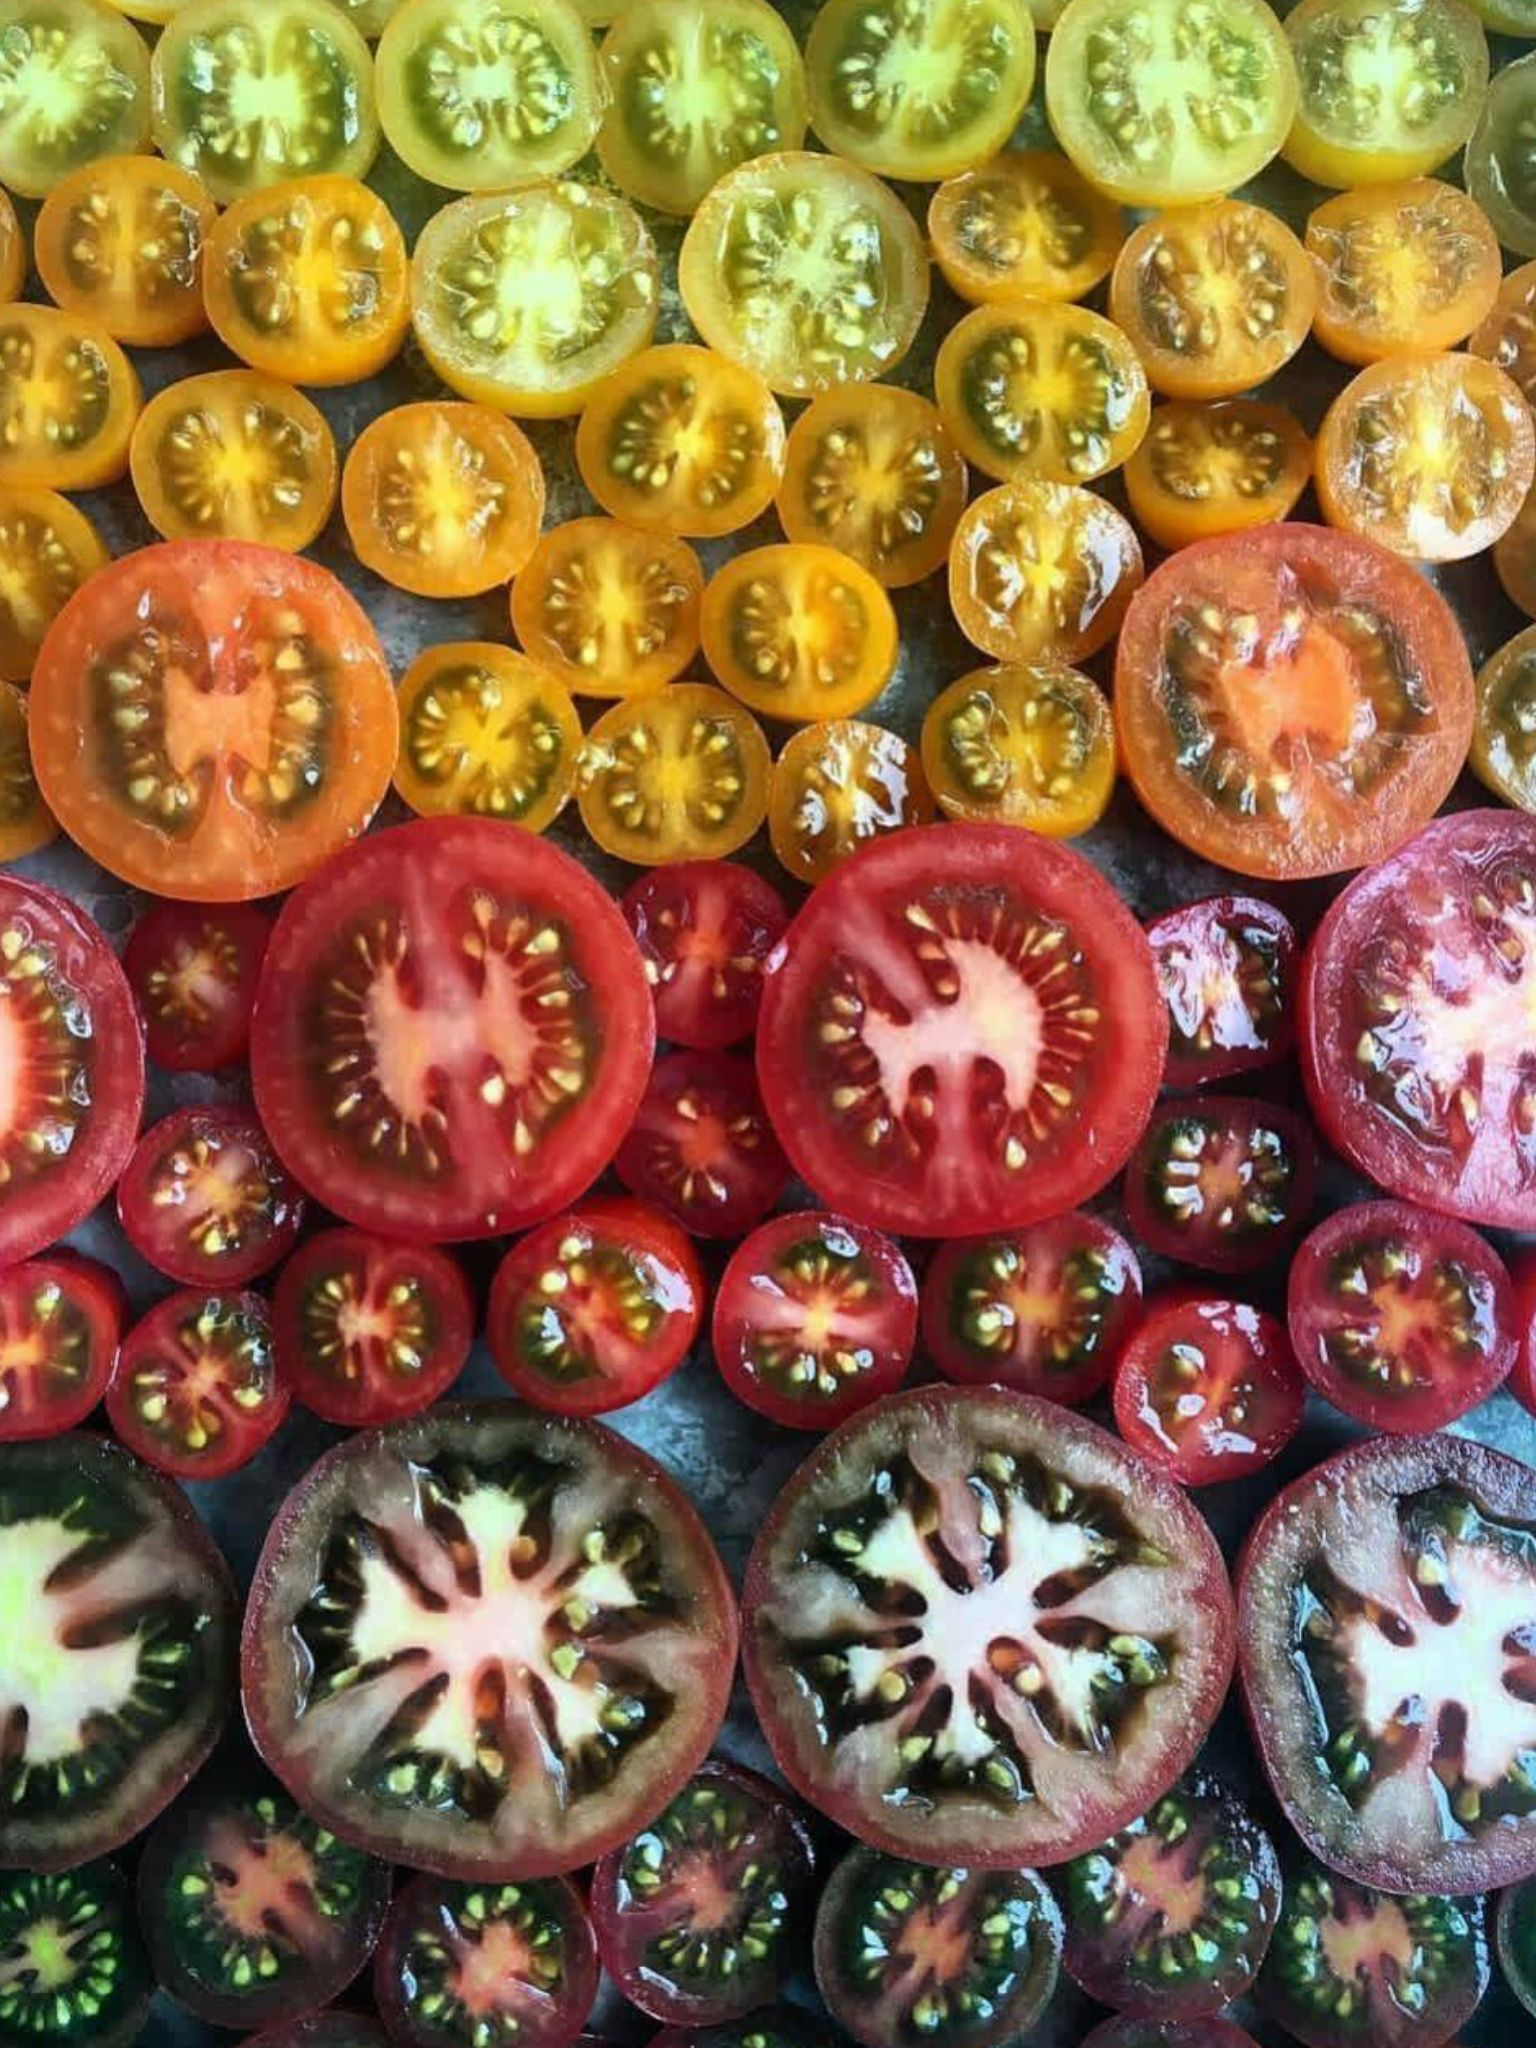 Pin by Kimmy Bowie on Healthy foods are so colorful ...